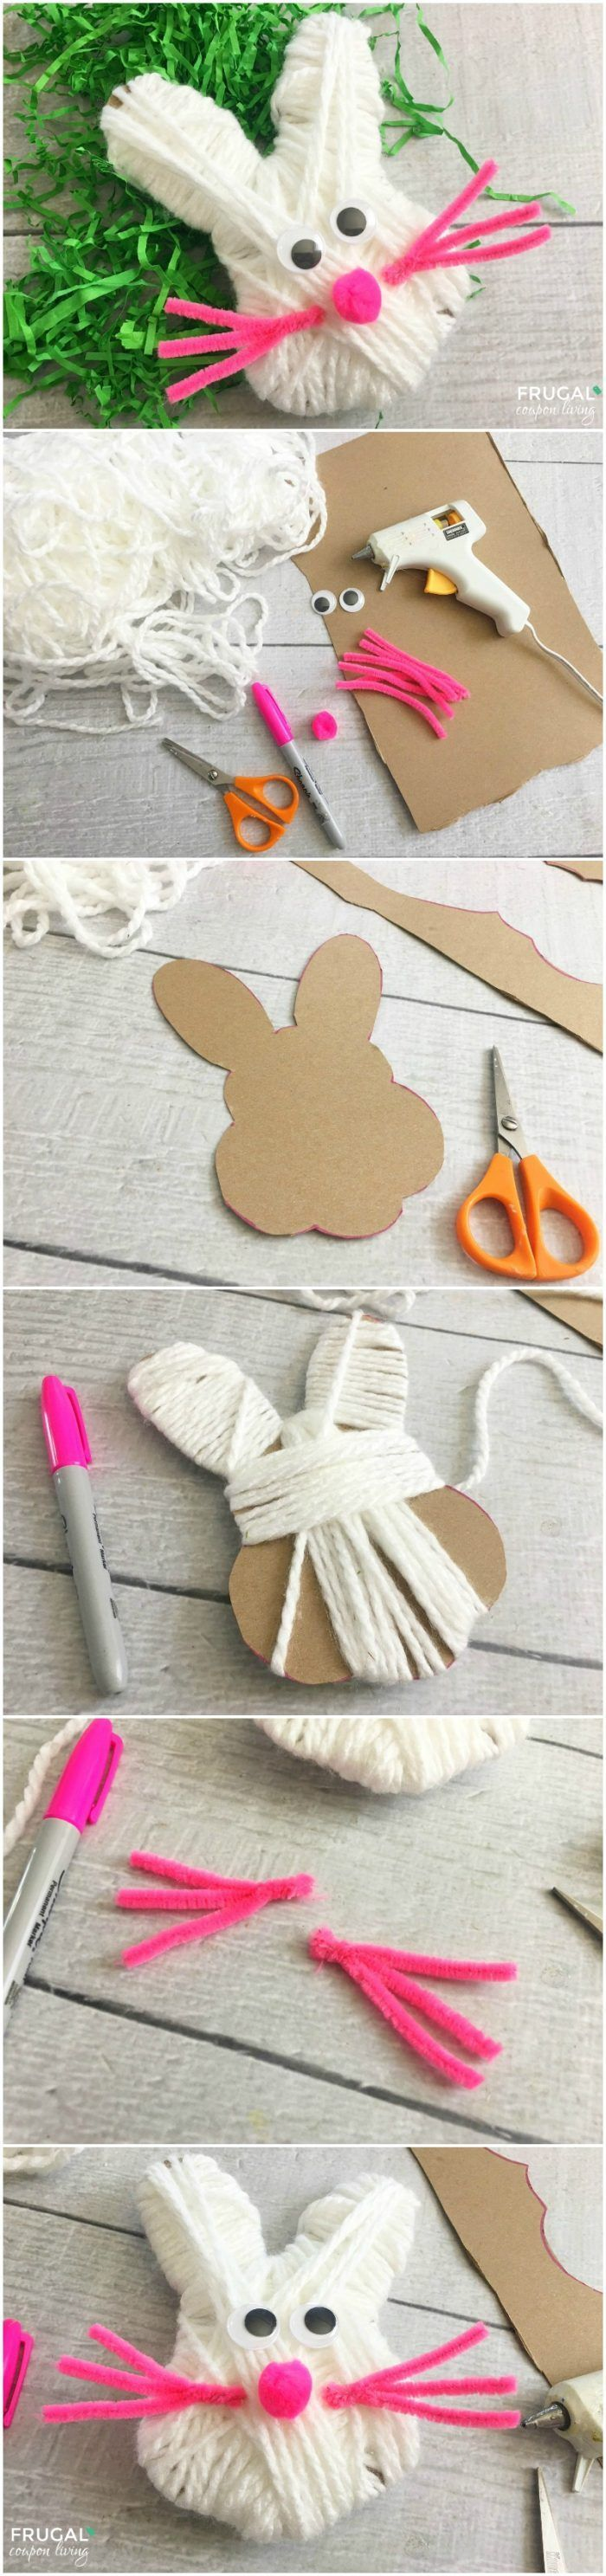 Preschool Bunny Easter Craft for Kids on Frugal Coupon Living.